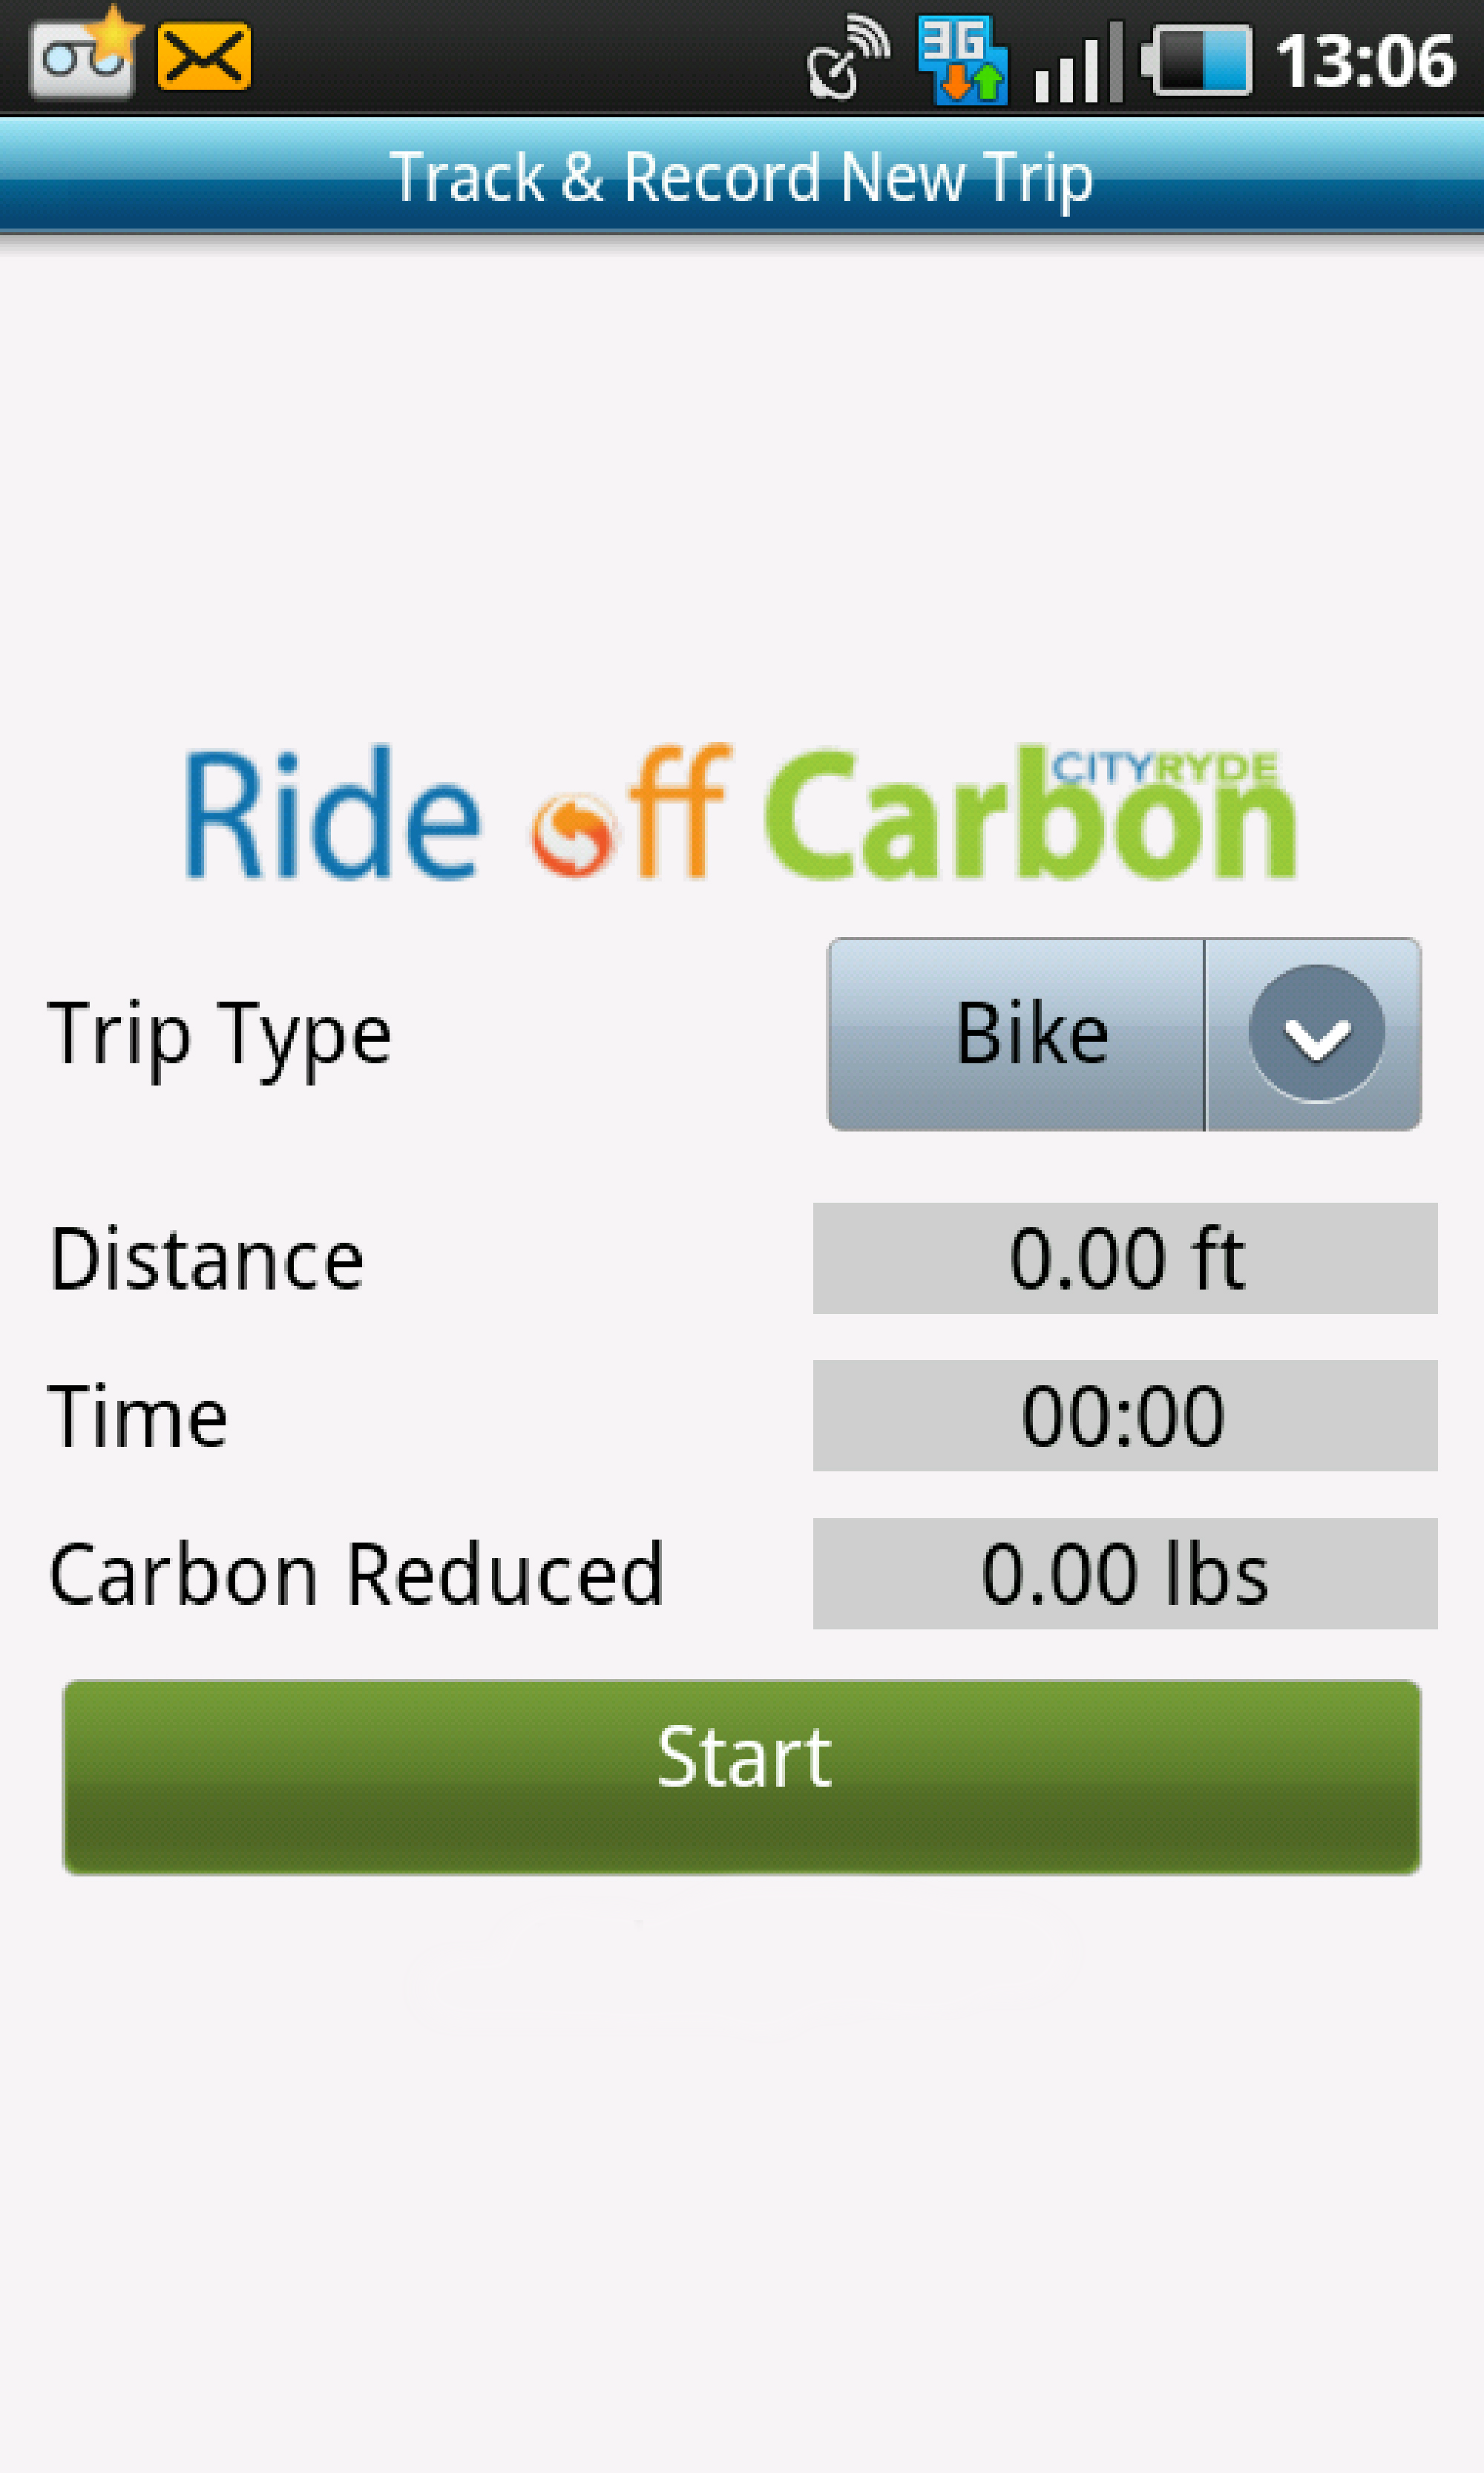 Ride off Carbon - Start Trip Scene.png